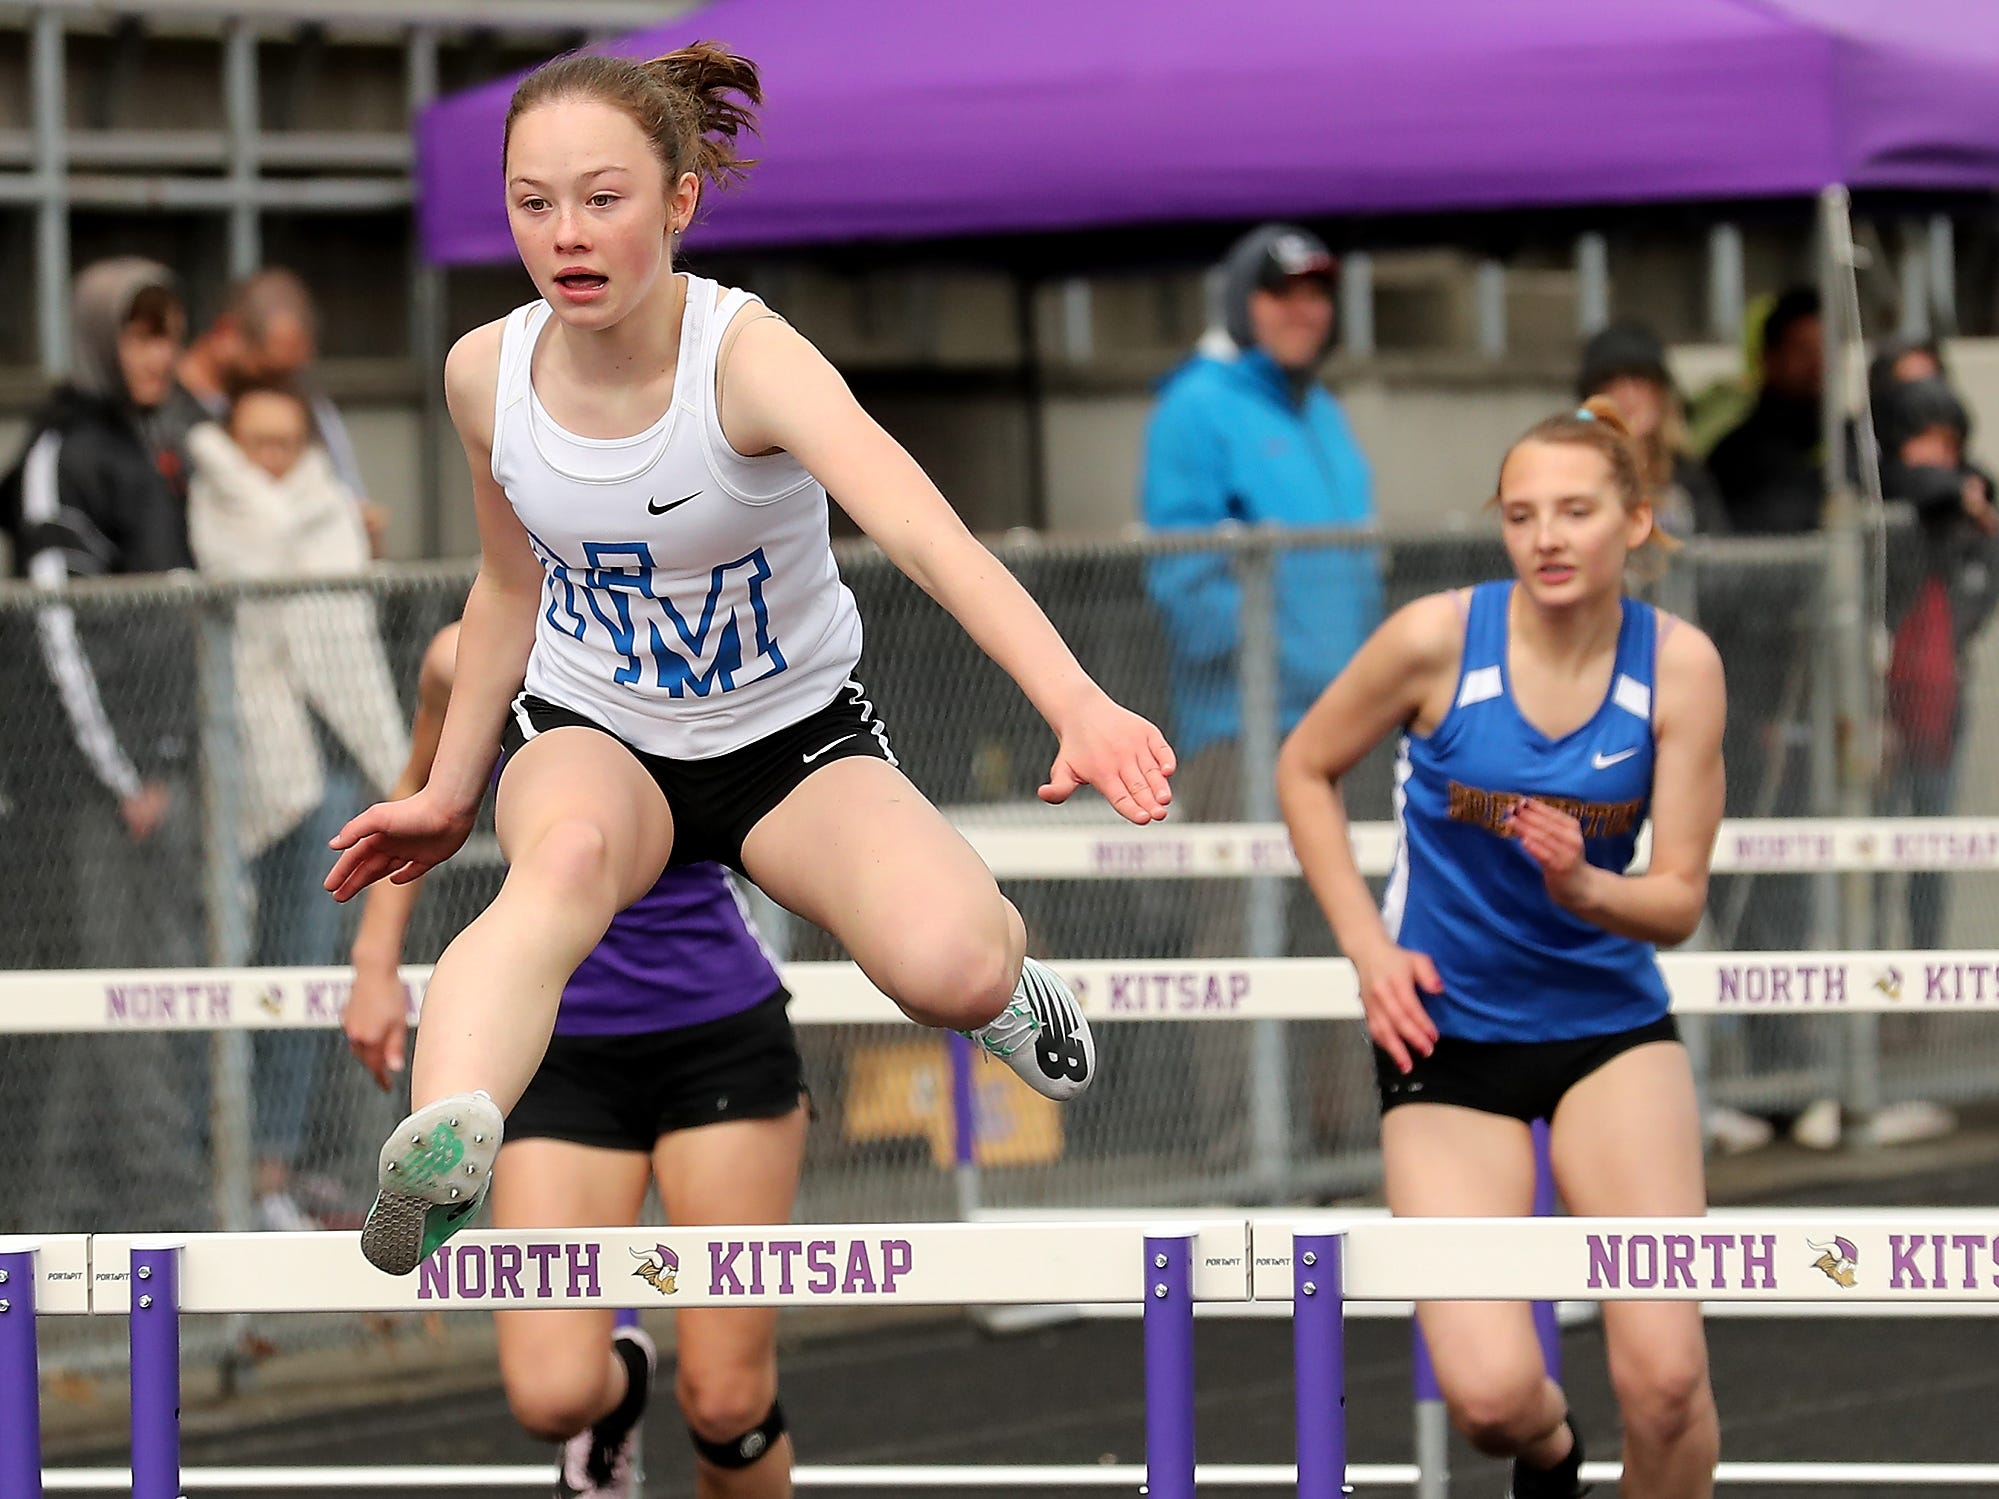 Lil' Norway Invitational at North Kitsap High School in Poulsbo on Saturday, April13, 2019.